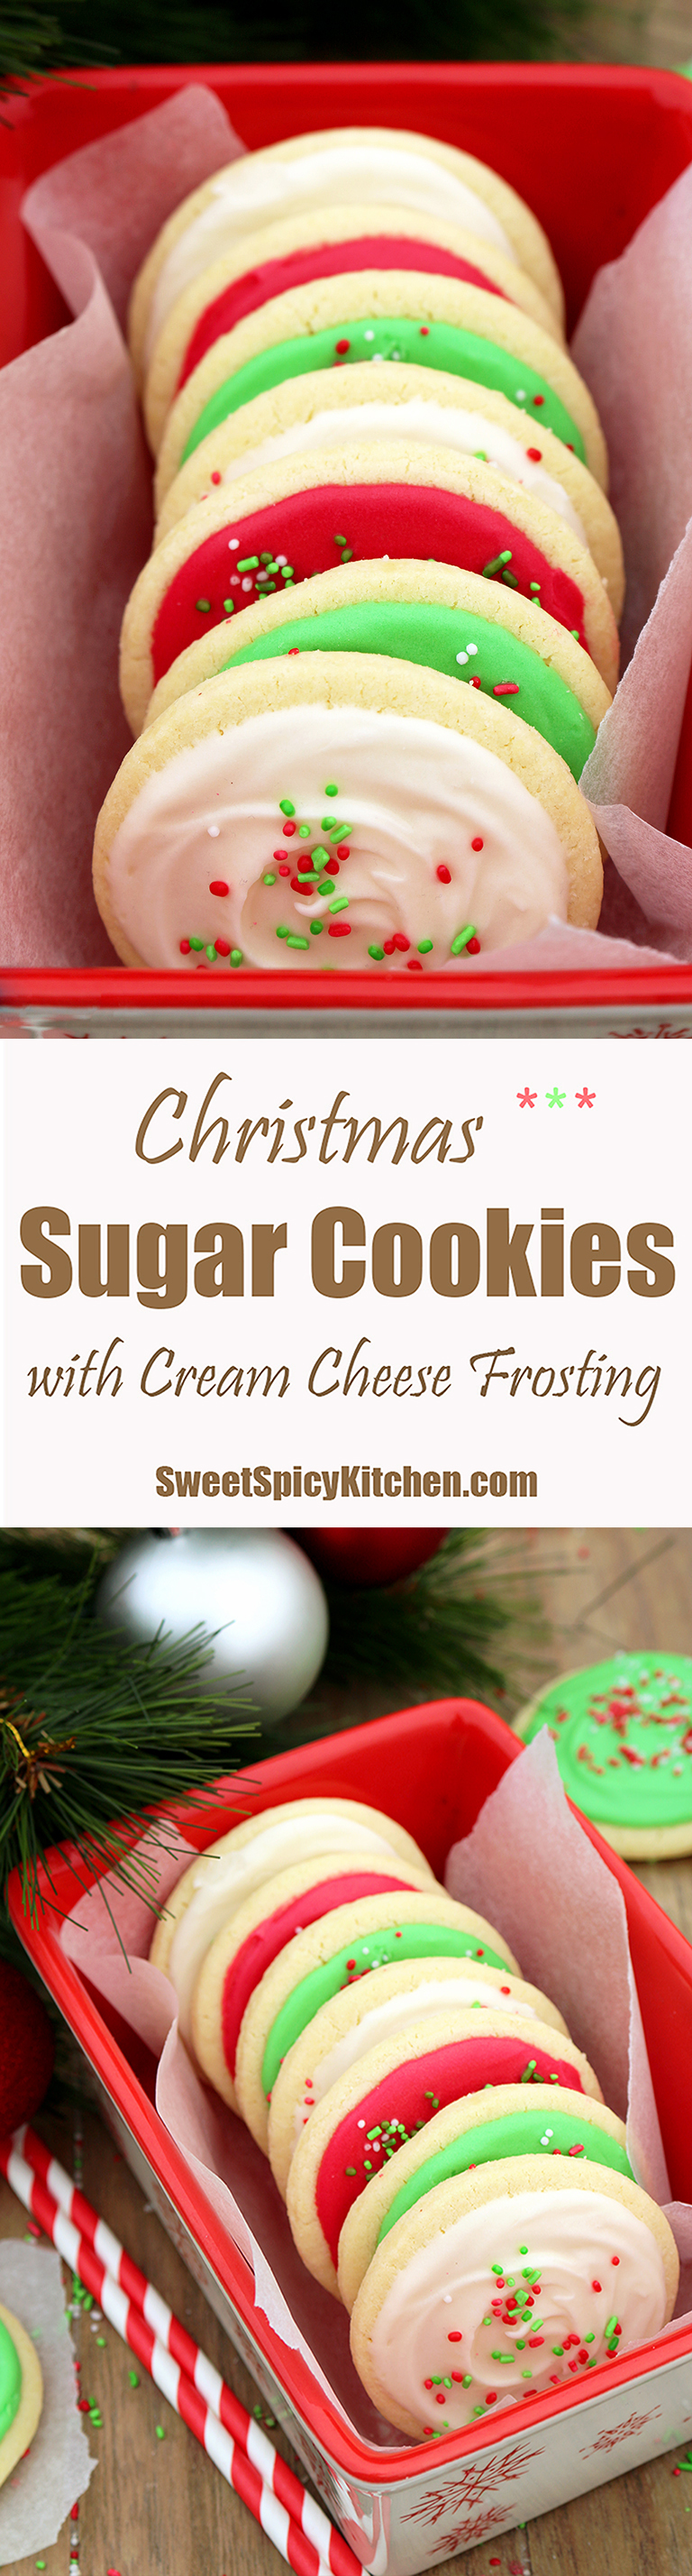 Christmas Sugar Cookies with Cream Cheese Frosting are perfect for the upcoming holiday – Christmas, especially for those who like sugar cookies on their Christmas plates